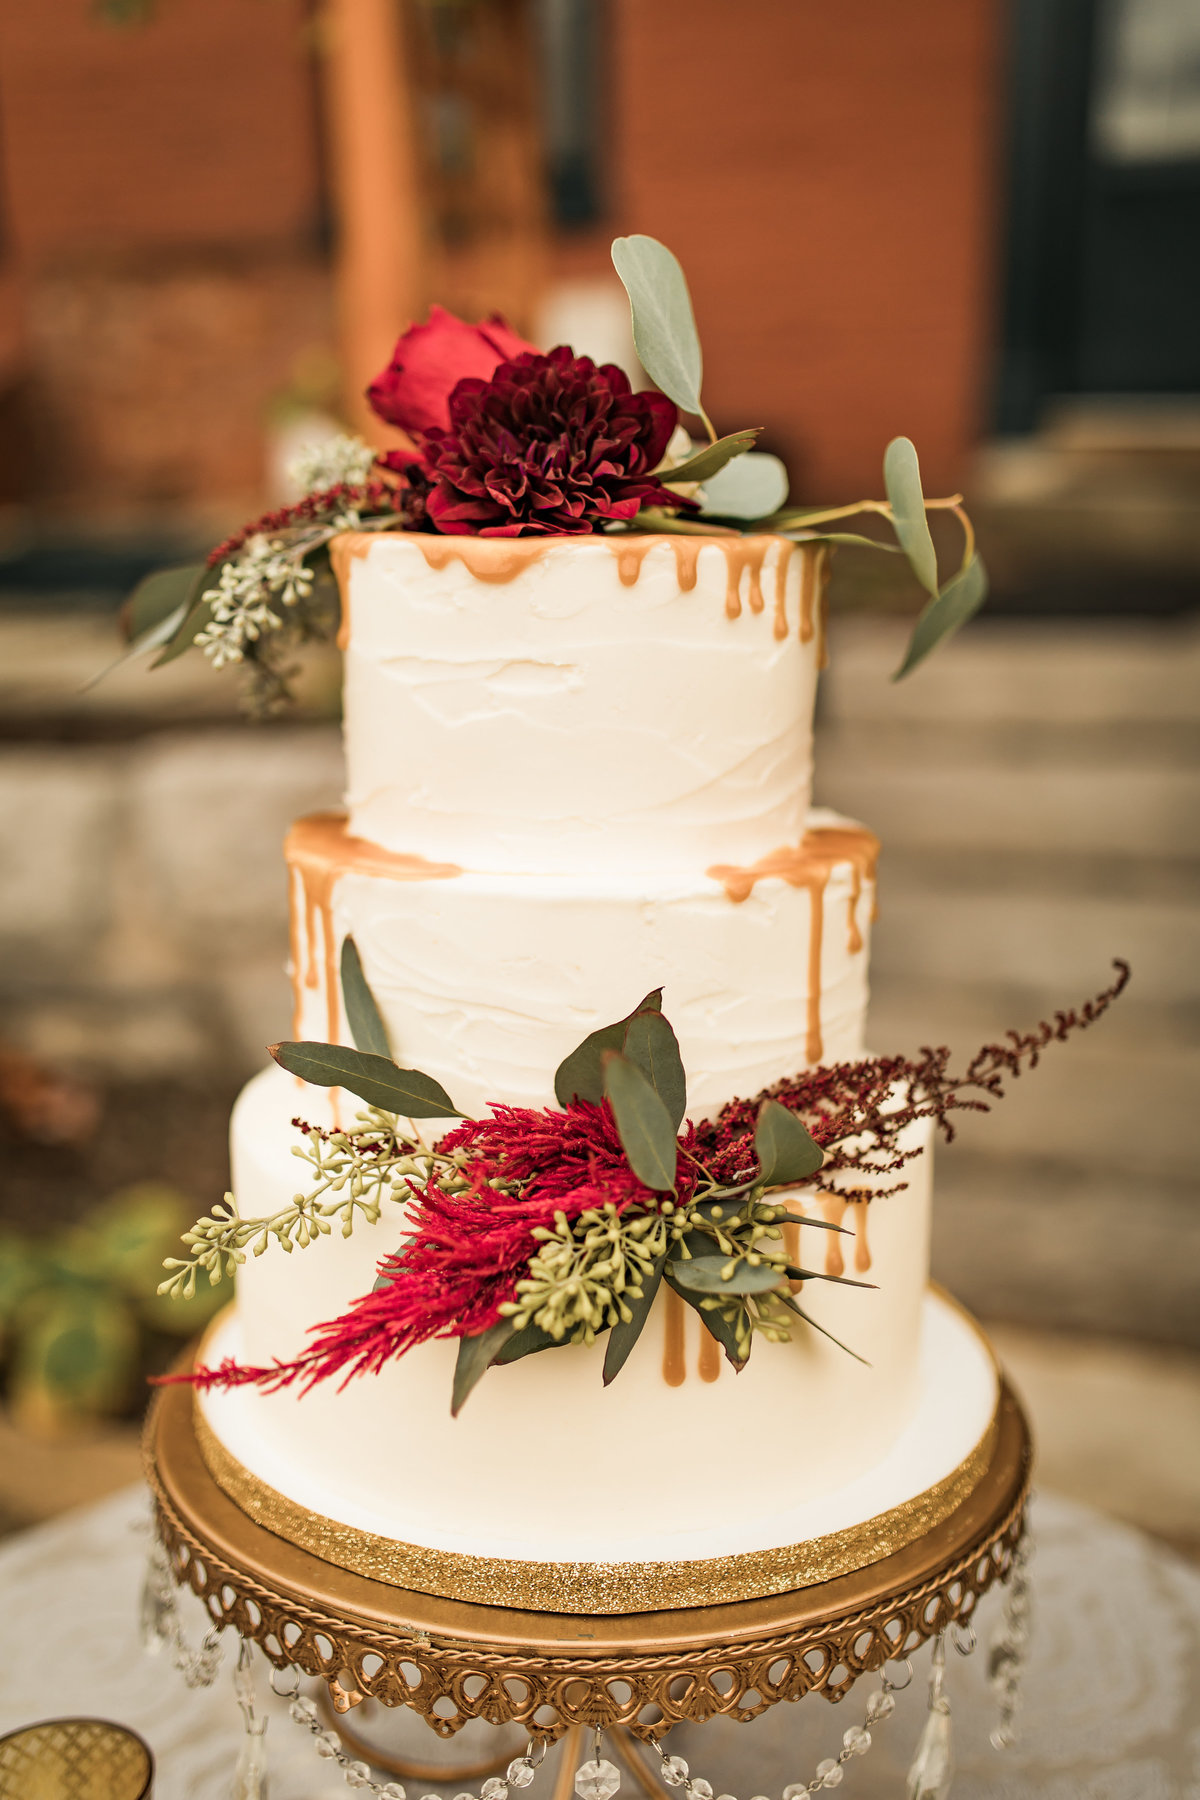 Fall Boho-Inspired Styled Shoot Lafayette Square Historic District  St. Louis, Missouri  Allison Slater Photography  Wedding Photographer117